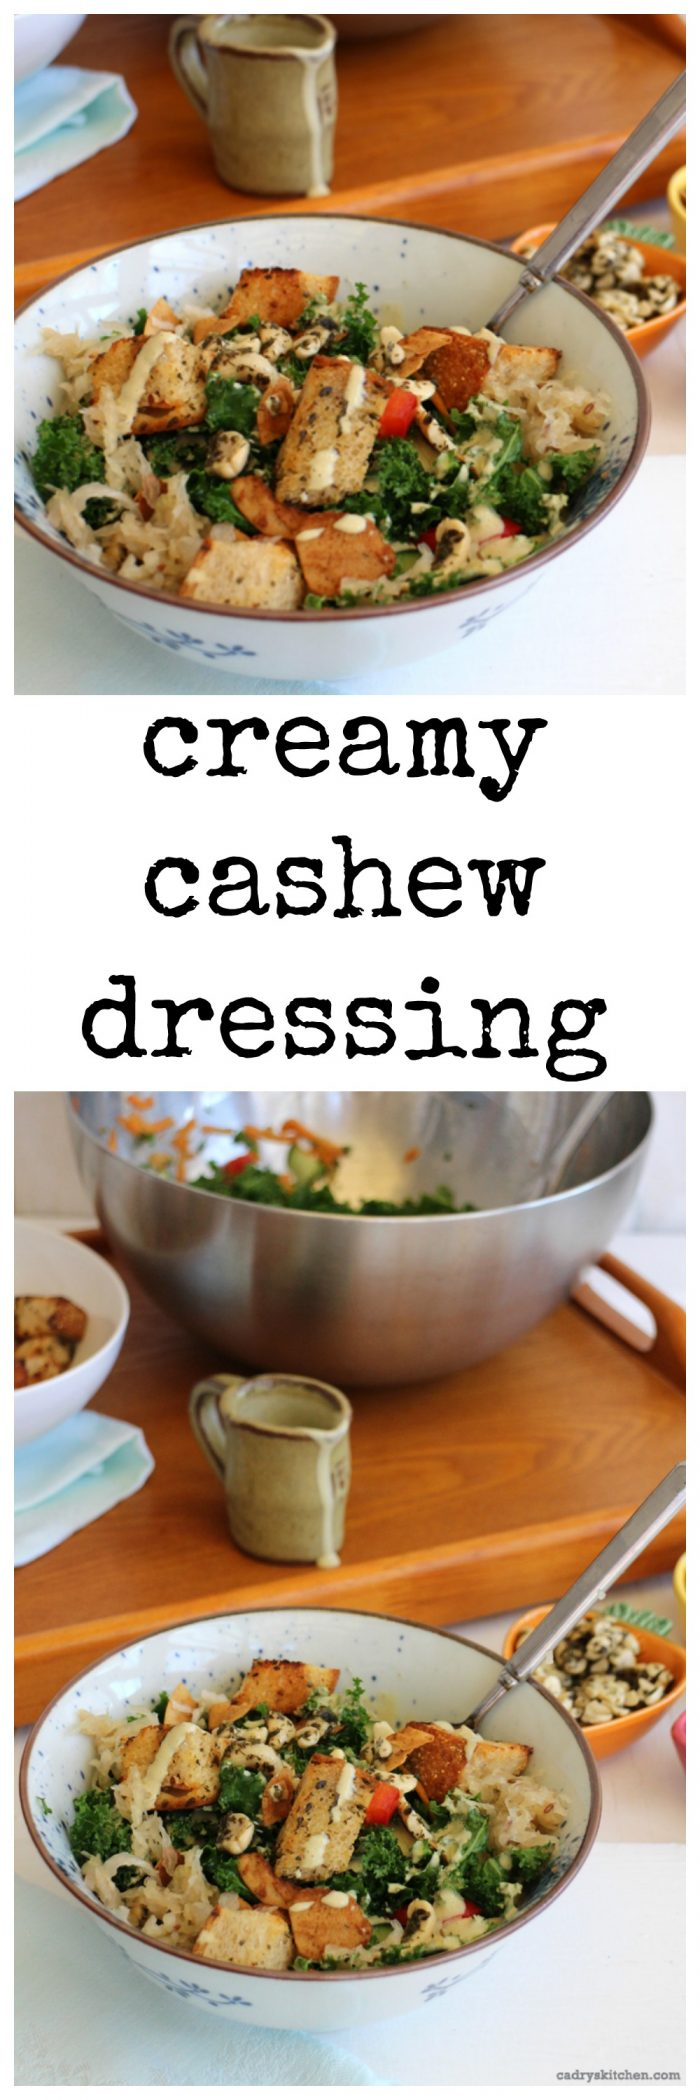 Creamy cashew dressing + 5 keys to a craveable salad | cadryskitchen.com #vegan